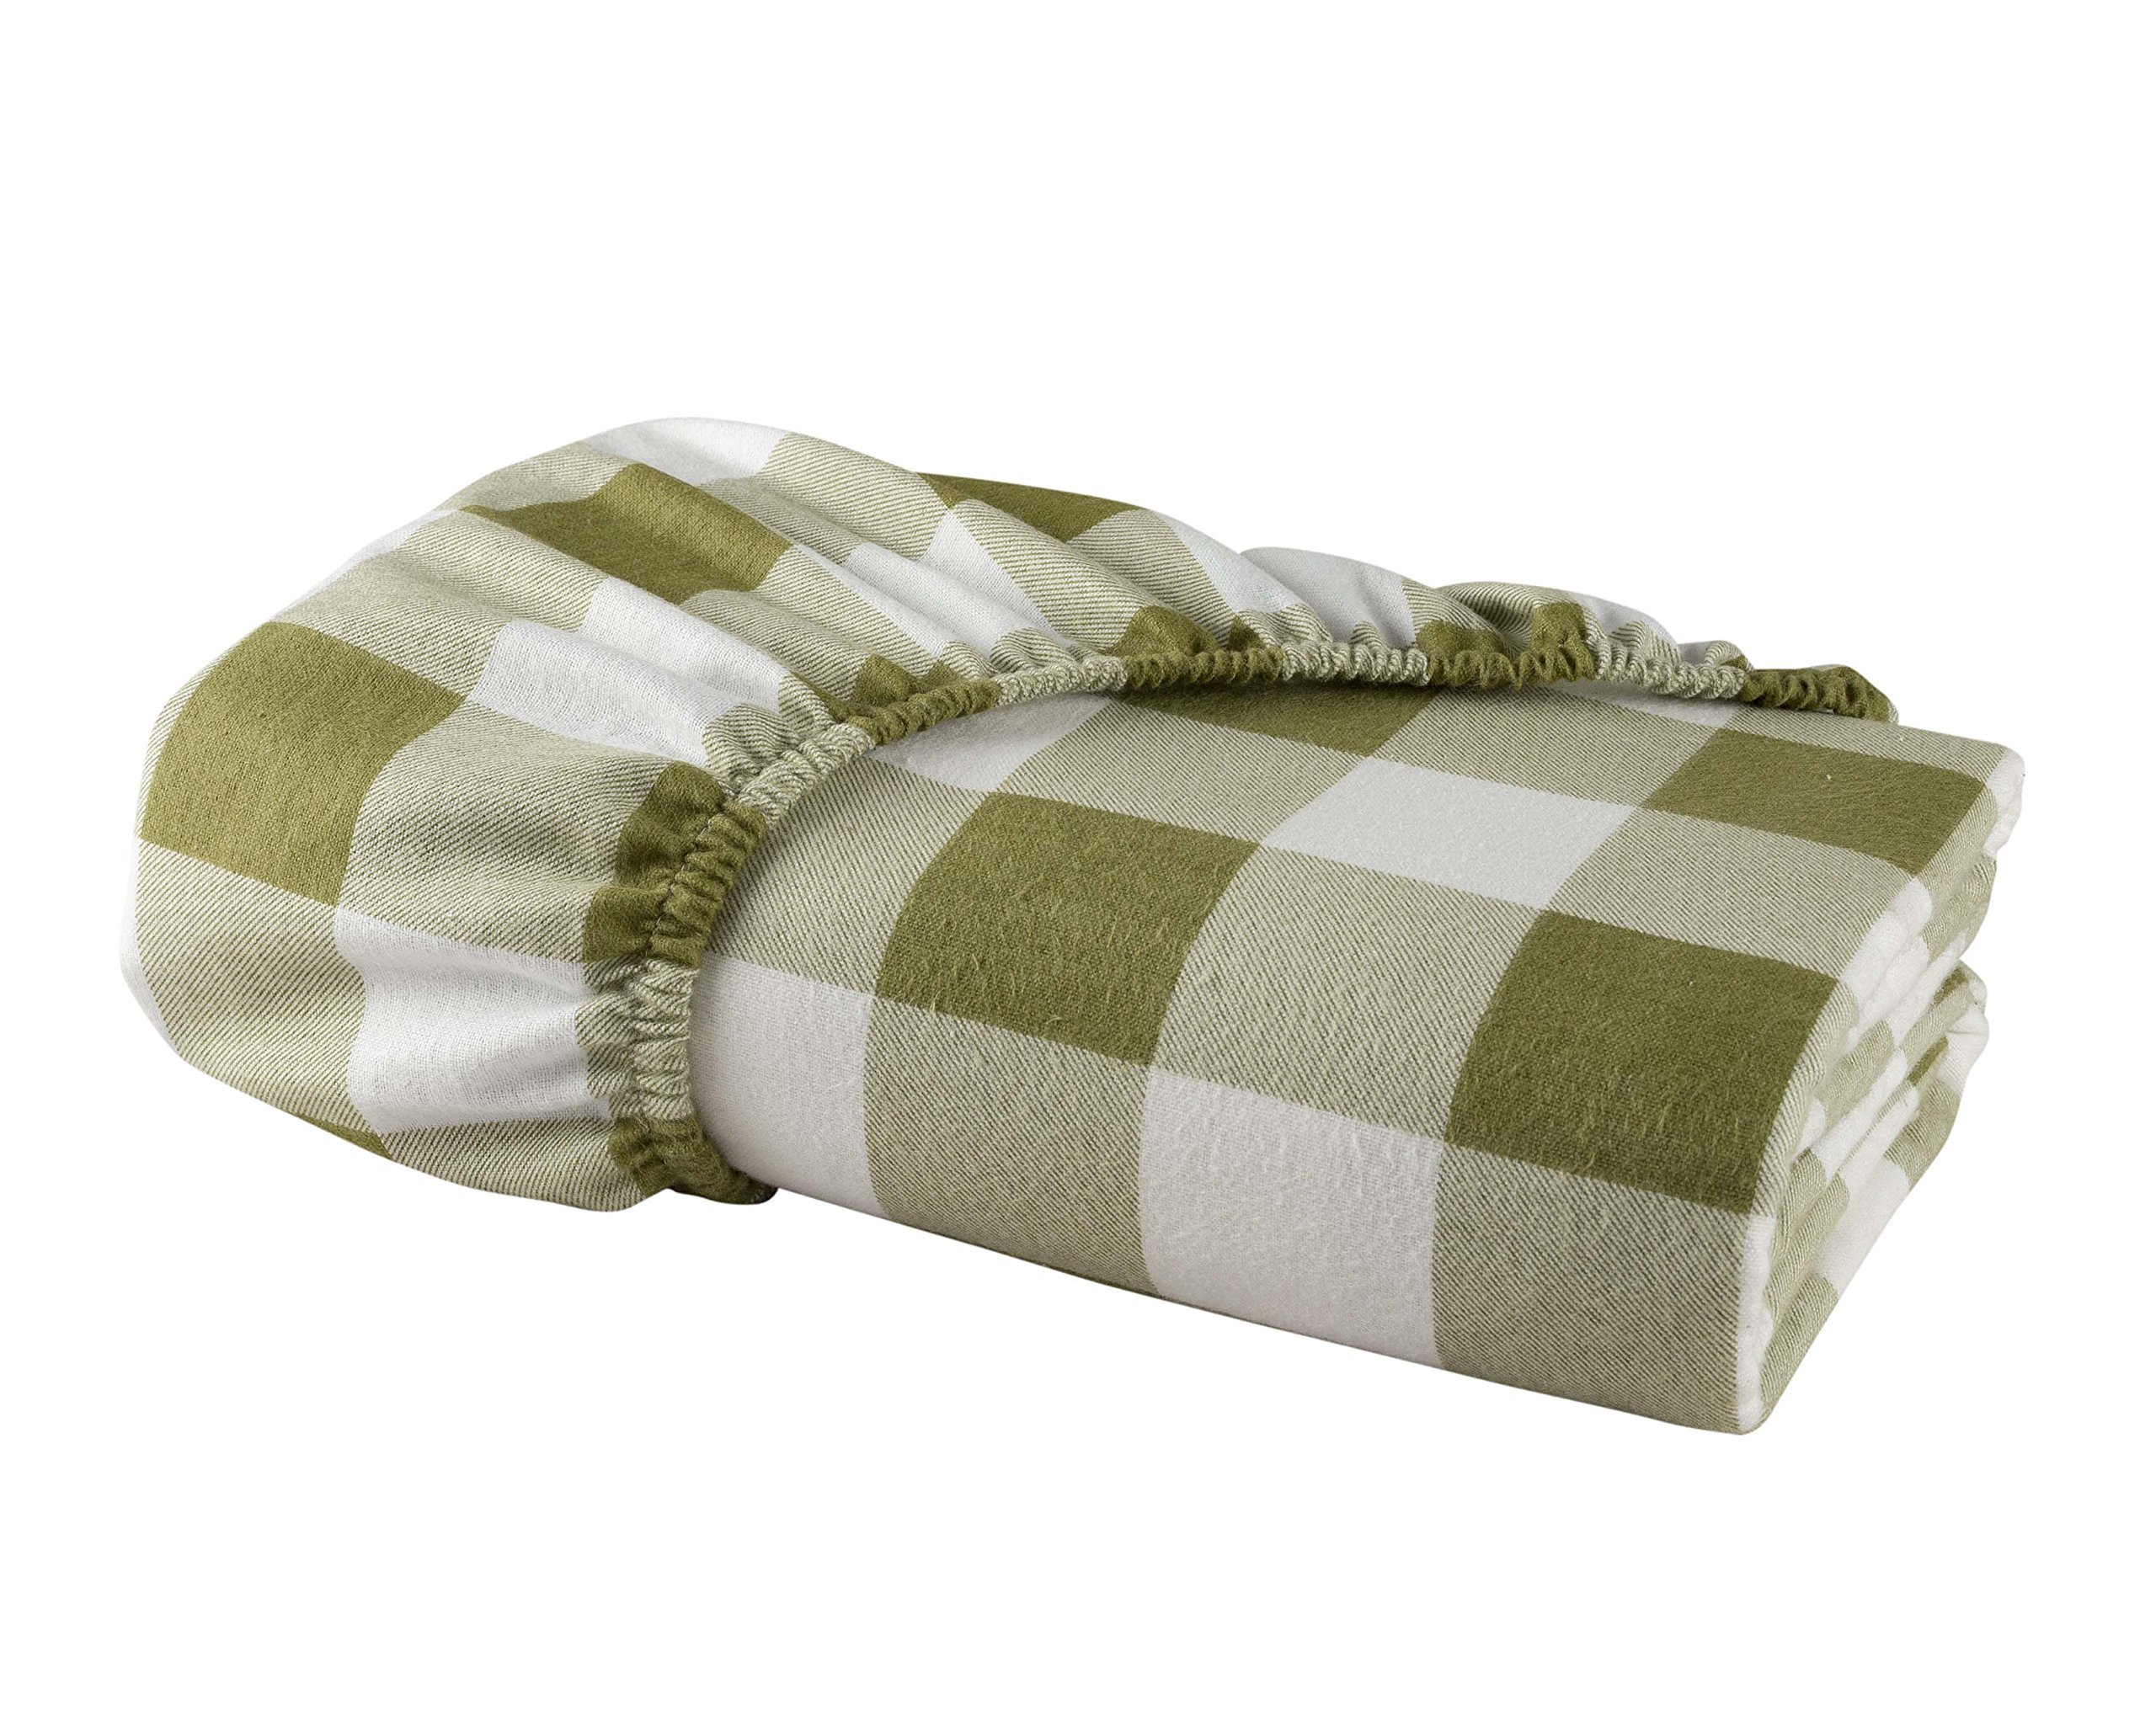 DELANNA Flannel Fitted Sheet 100% Brushed Cotton All Around Elastic 1 Fitted Sheet (60''x80'') (QUEEN, BUFFALO CHECK SAGE)